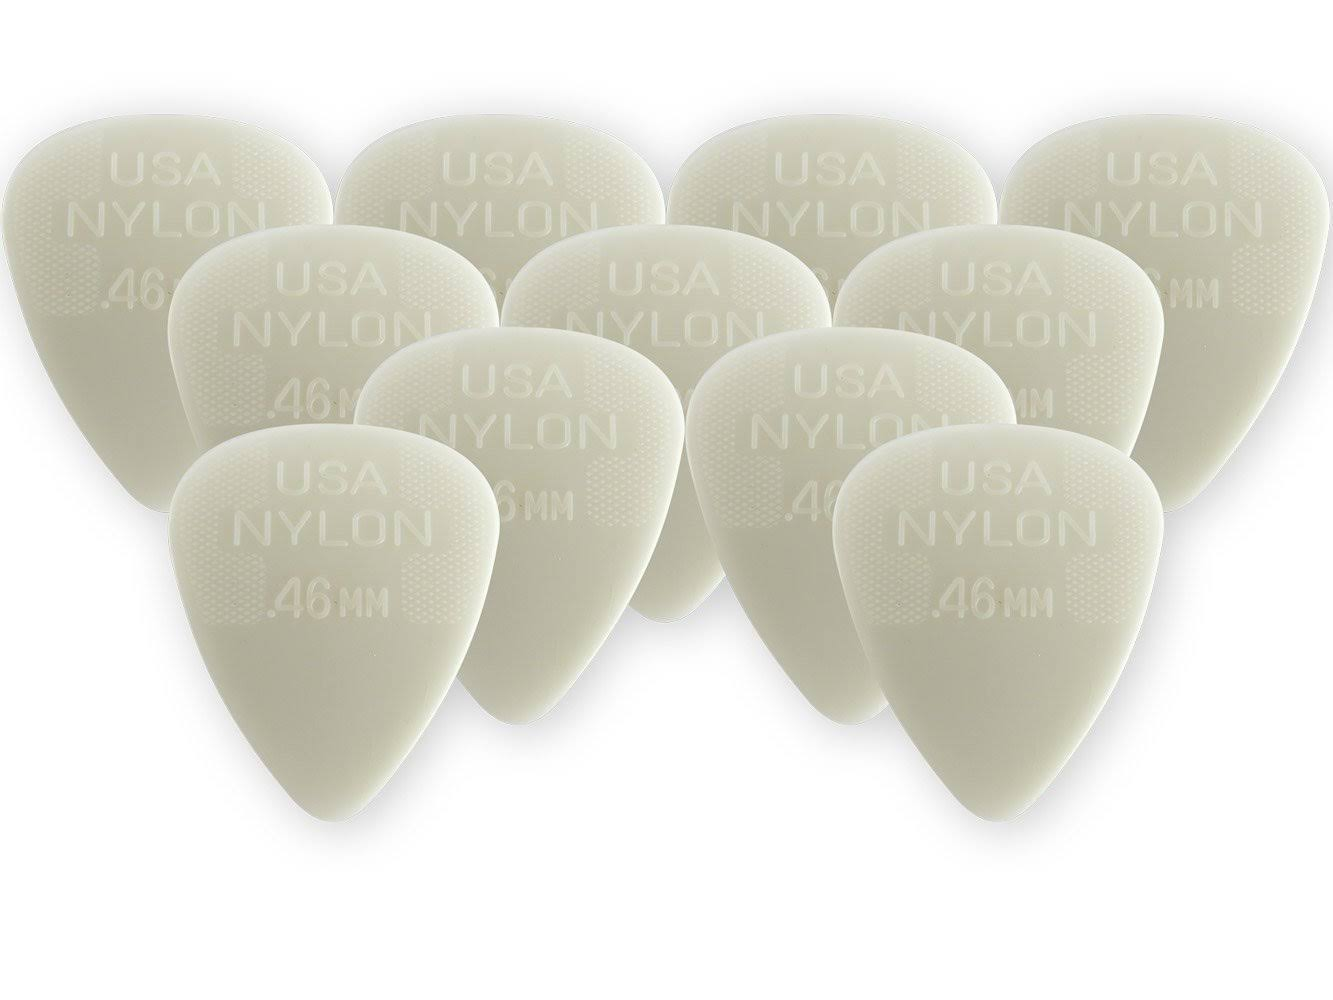 Dunlop - Nylon Standard - Guitar Picks - 12 Pack (0.46 mm)